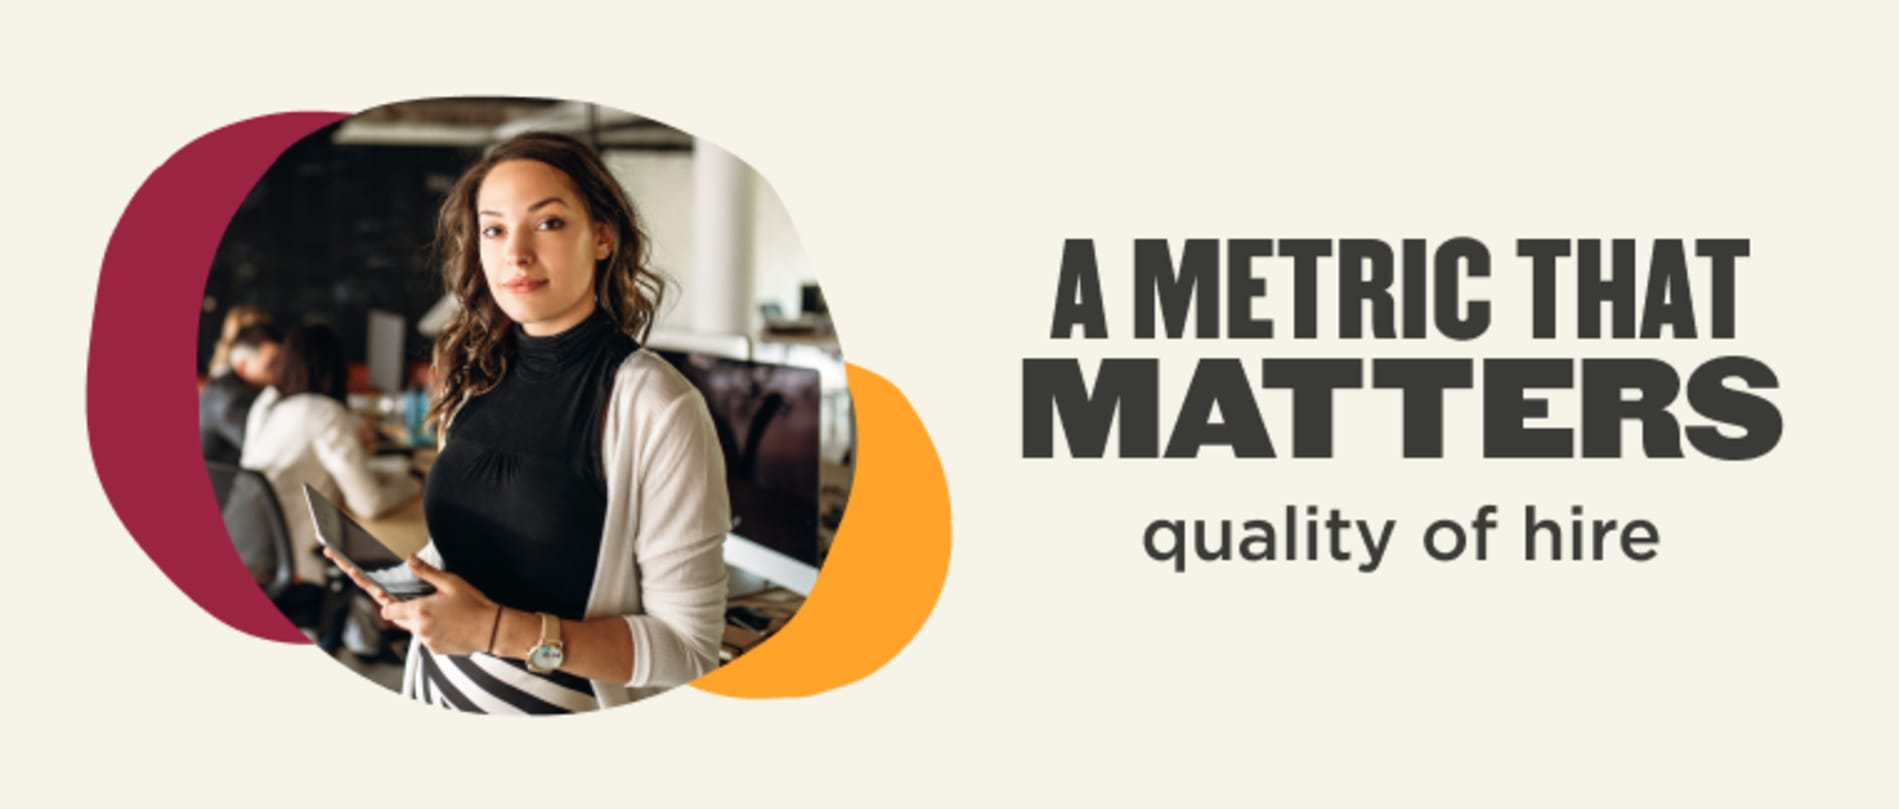 A metric that matters (quality of hire)